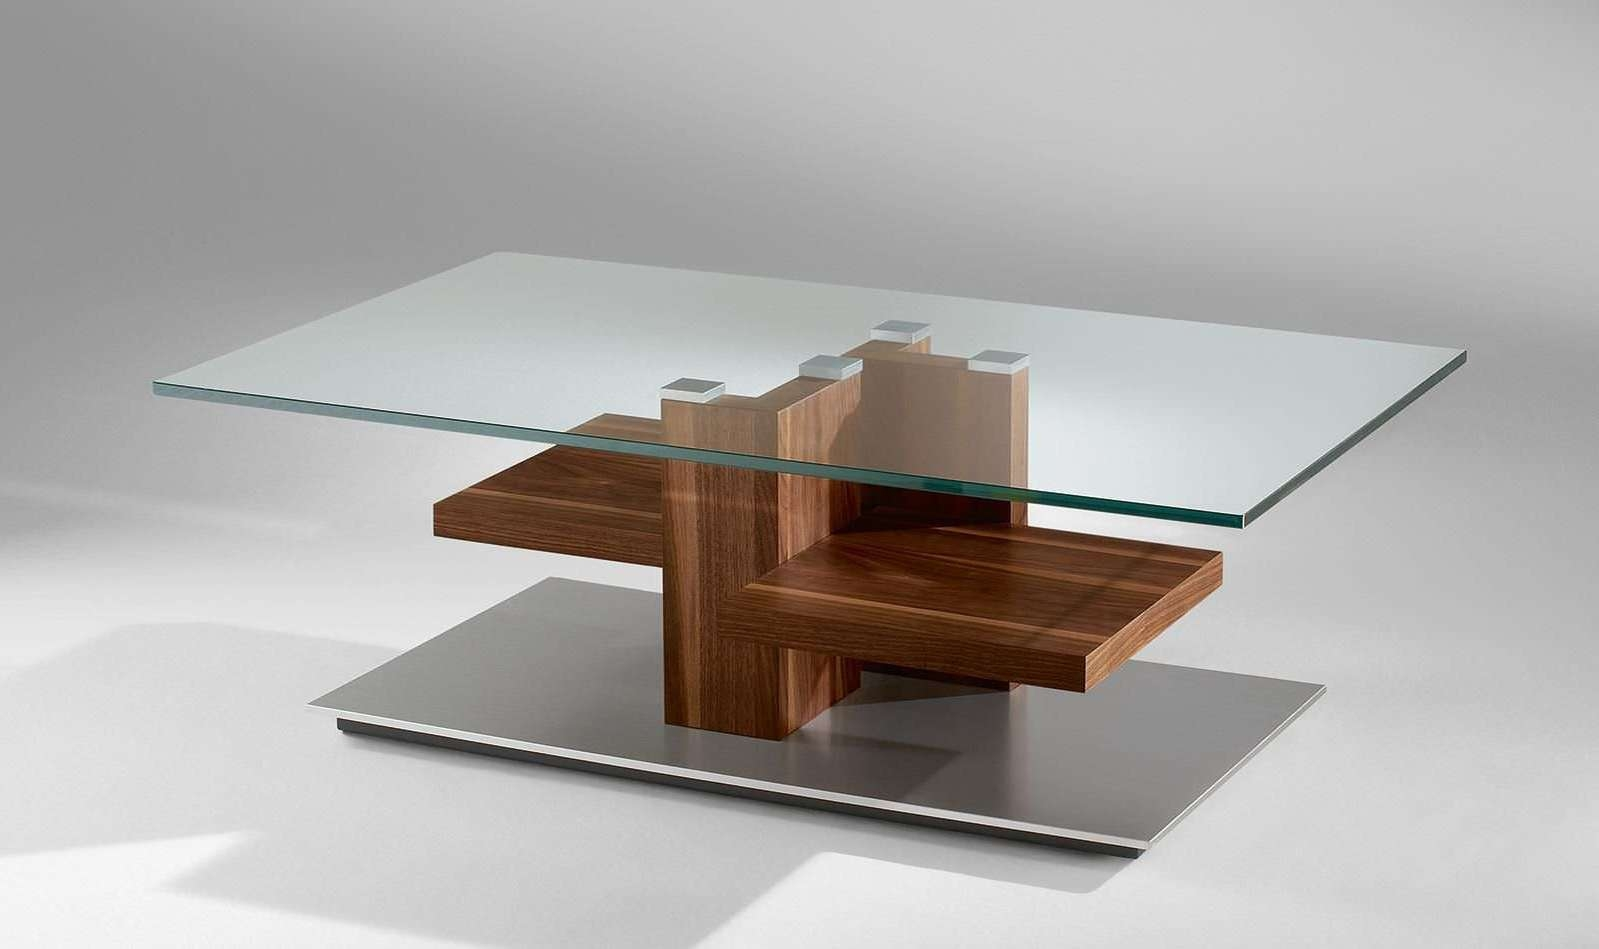 Wood & Glass Coffee Table – Sturdy Wooden Leg Construction Inside Well Known Dark Wood Coffee Tables With Glass Top (View 23 of 23)